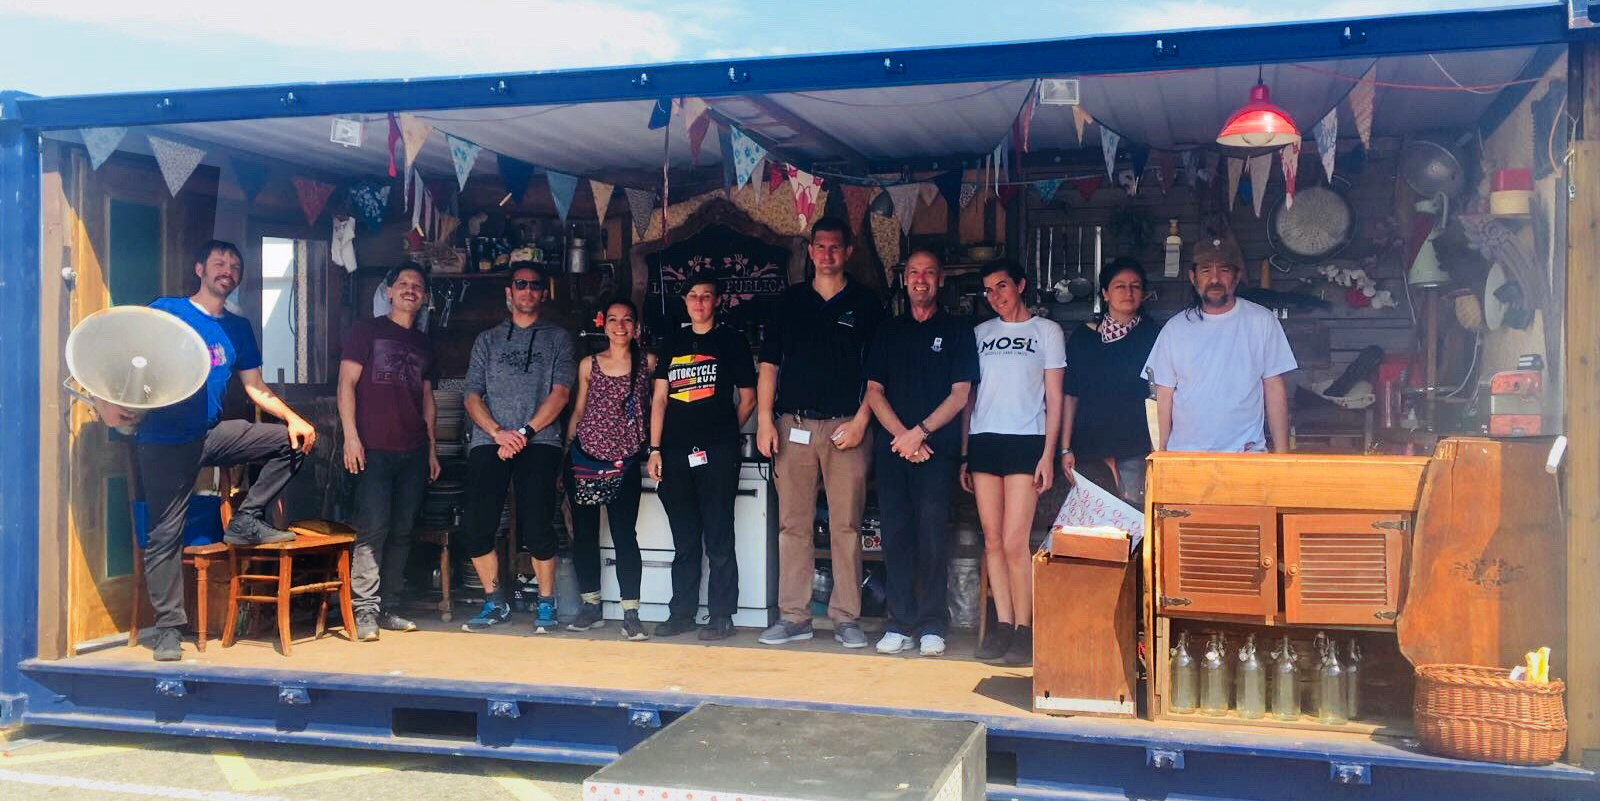 Photo of the Teatro Container team with their kitchen in a shipping container when they arrived at Tilbury.